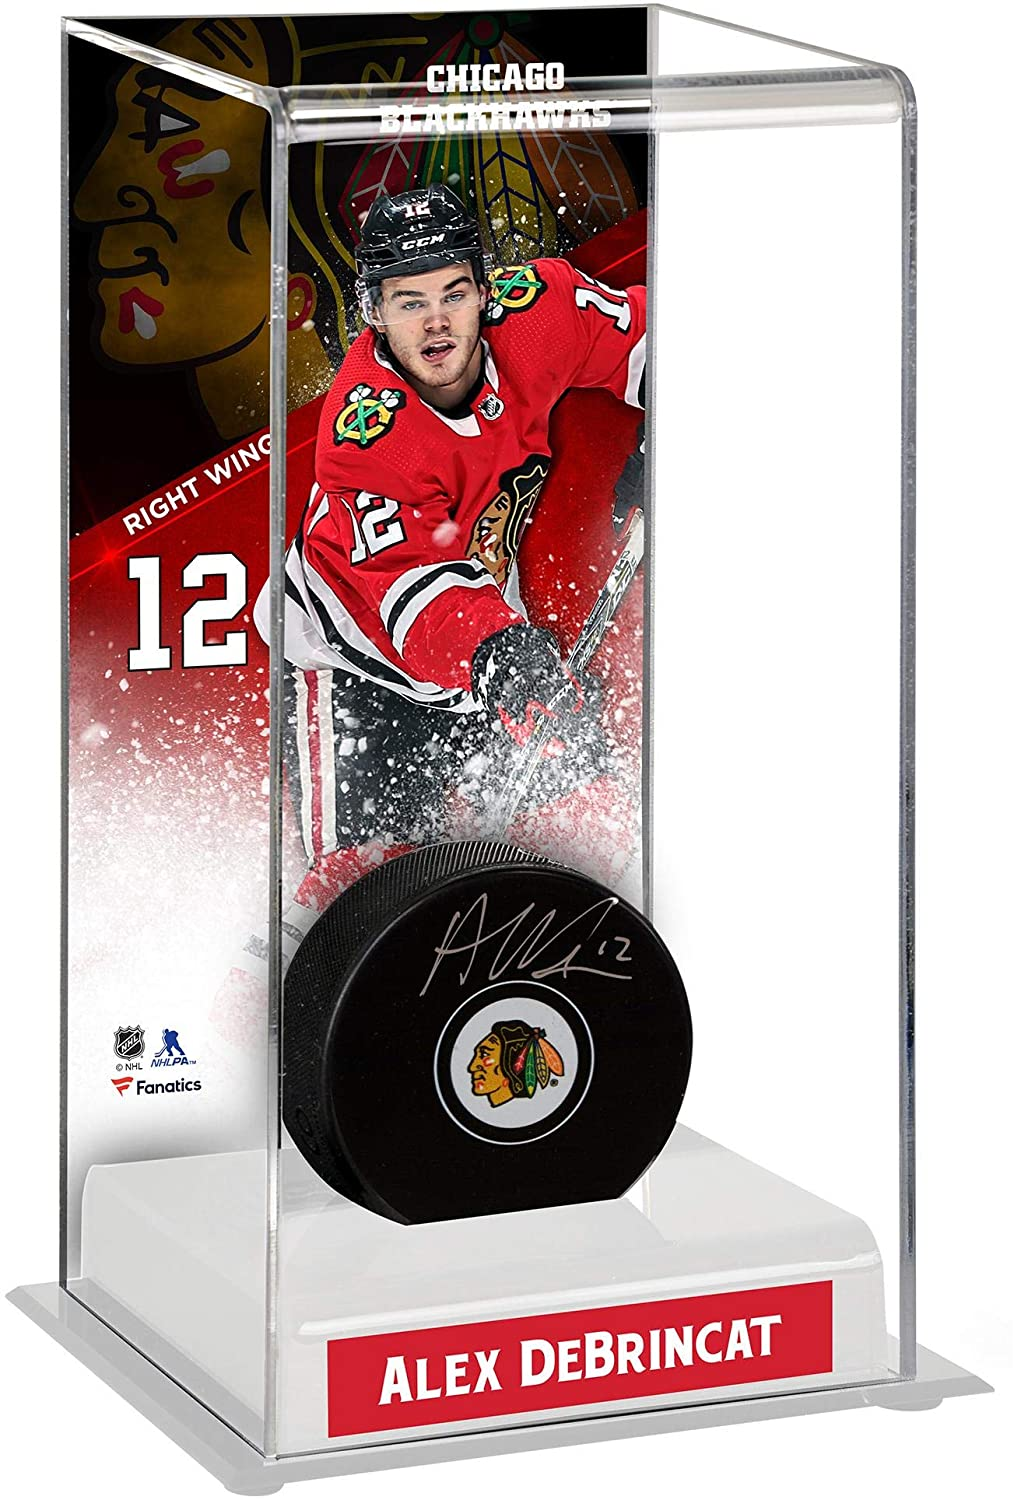 Alex DeBrincat Chicago Blackhawks Autographed Puck with Deluxe Tall Hockey Puck Case - Fanatics Authentic Certified